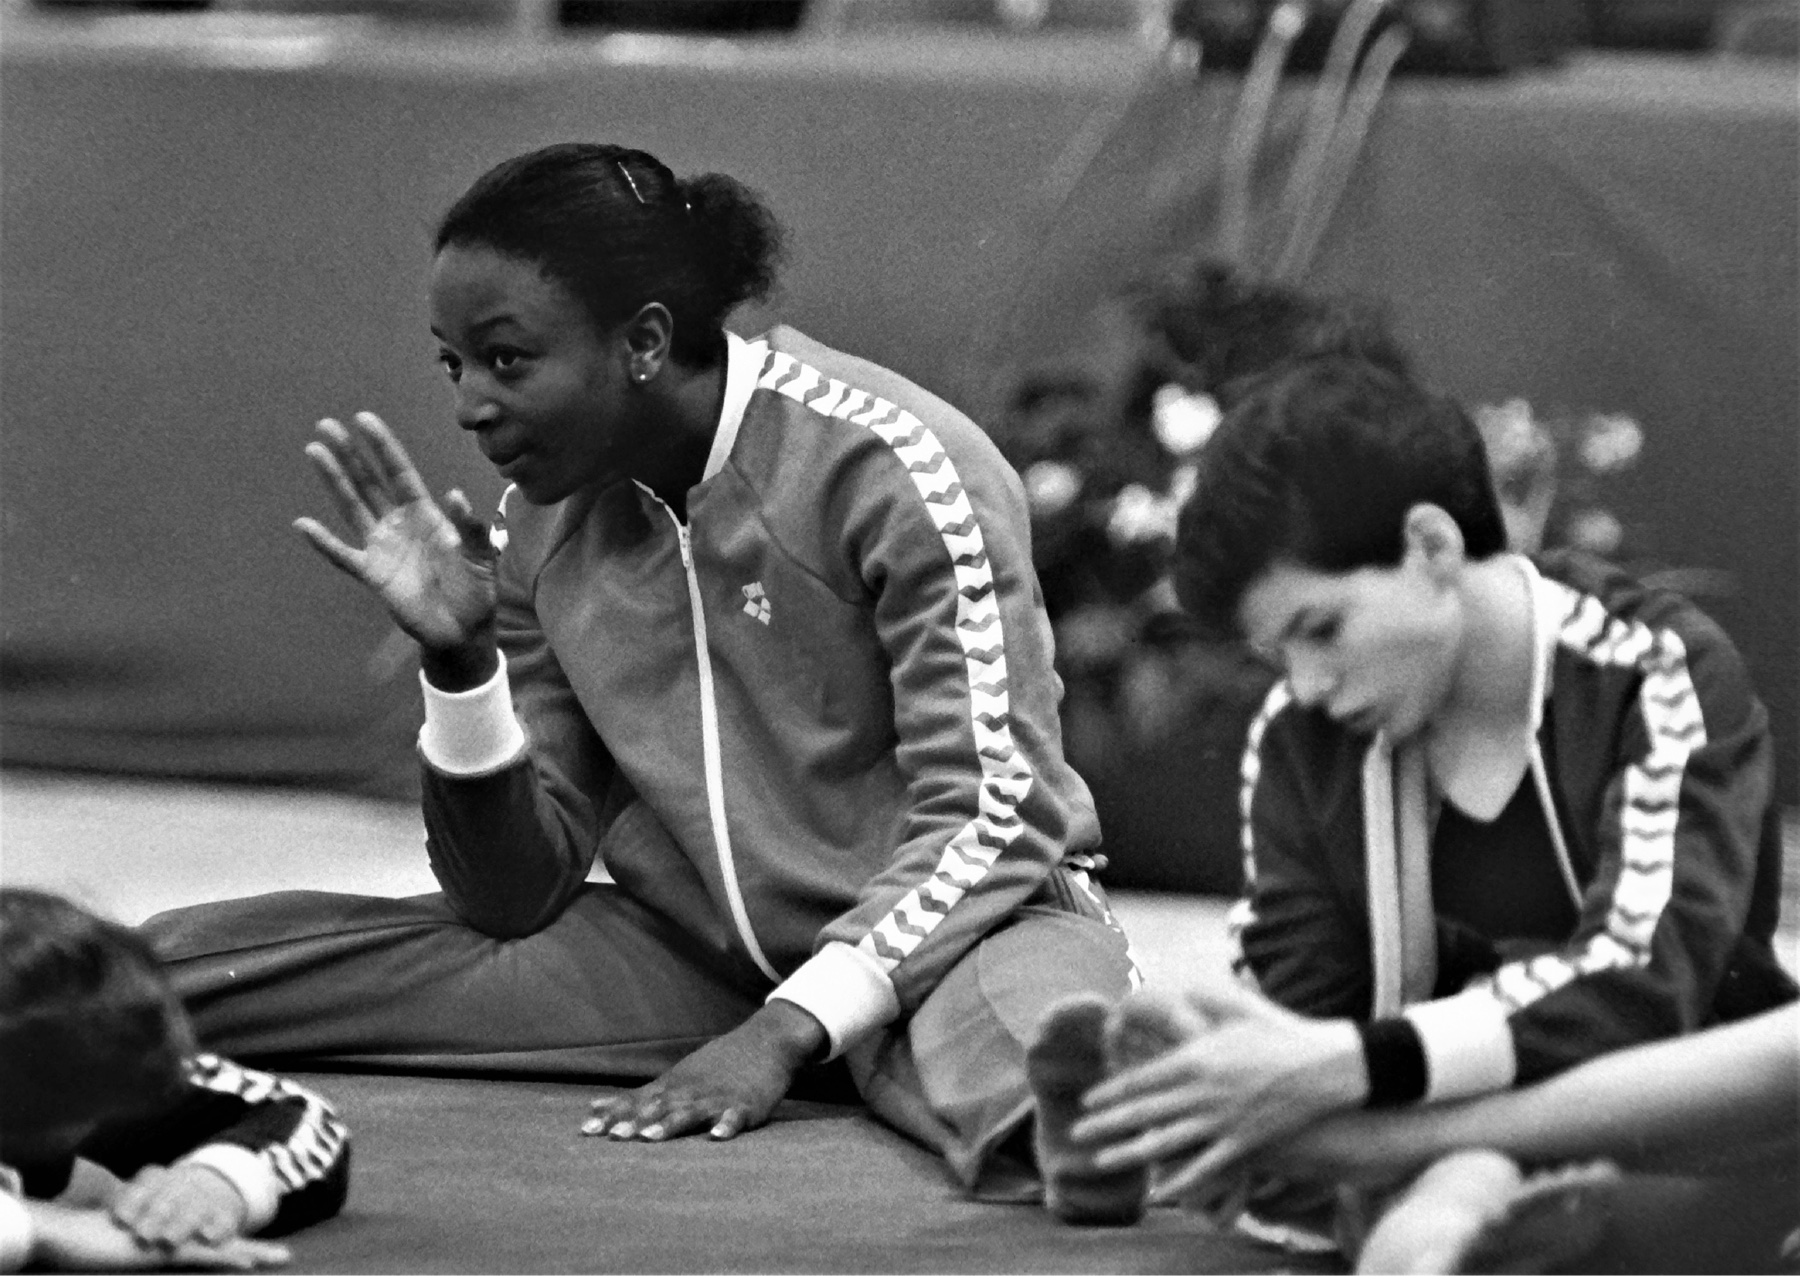 Williams Kathy warming up at the British Championships in 1986 - photo by Alan Burrows